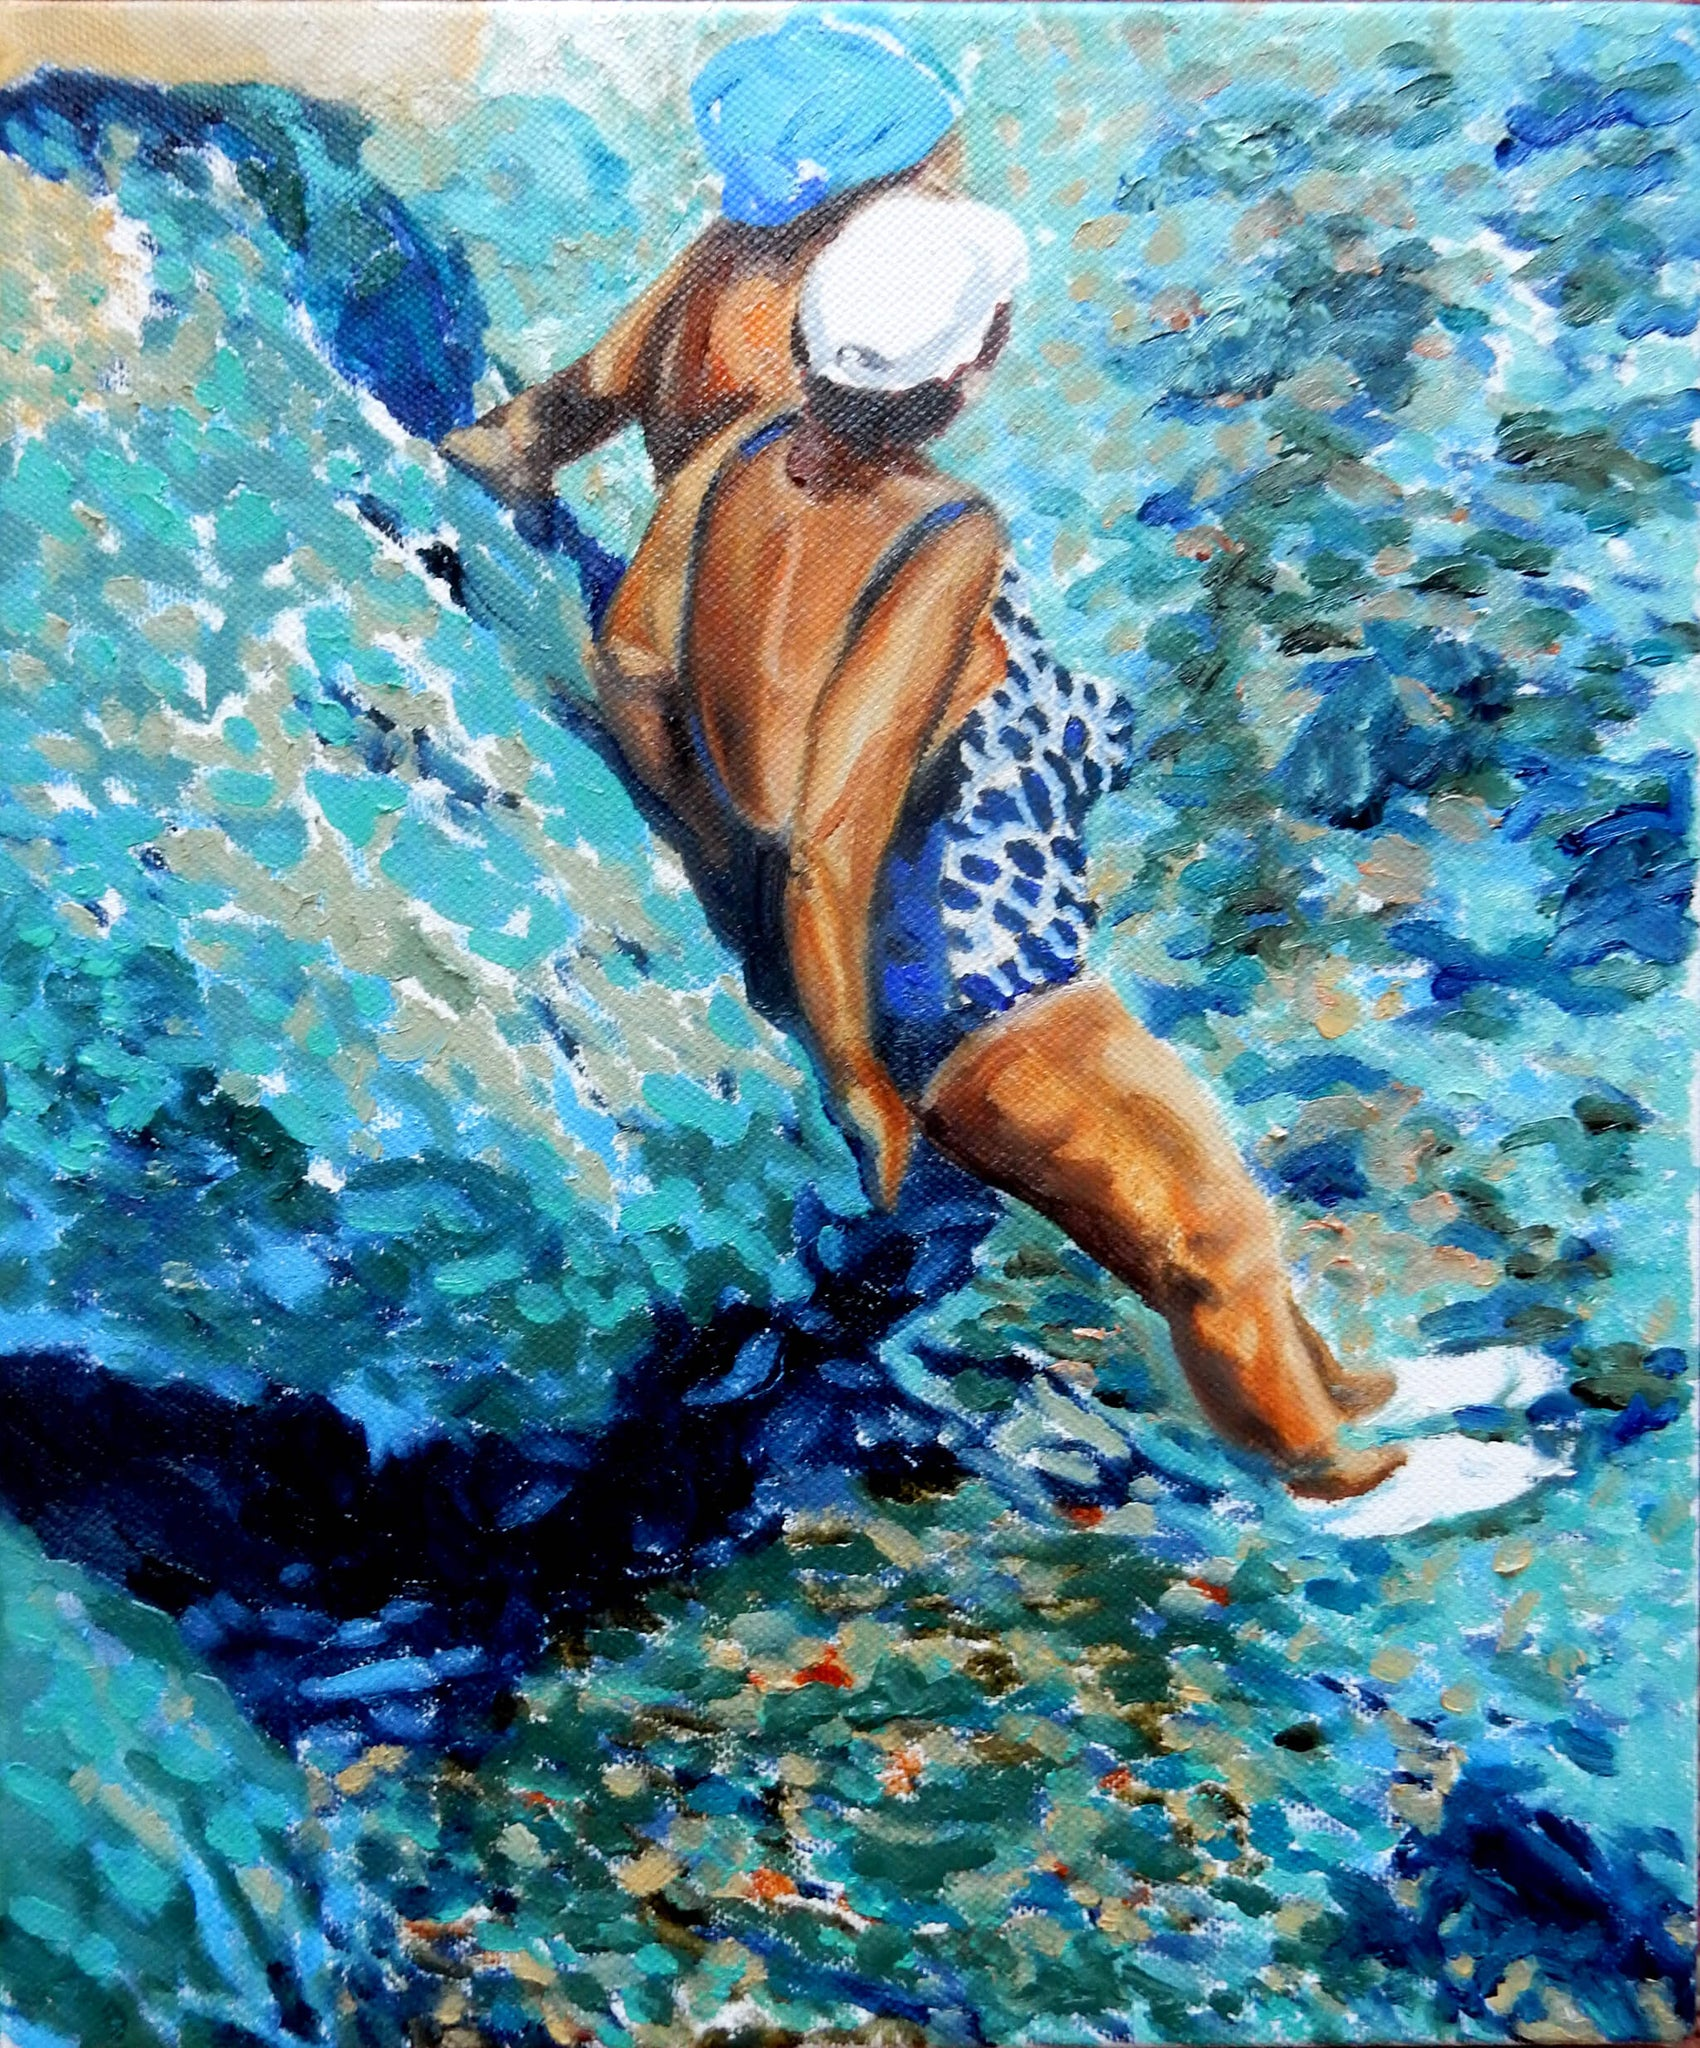 Just chillin' oil on canvas Ischia bather series artwork by Stella Tooth.